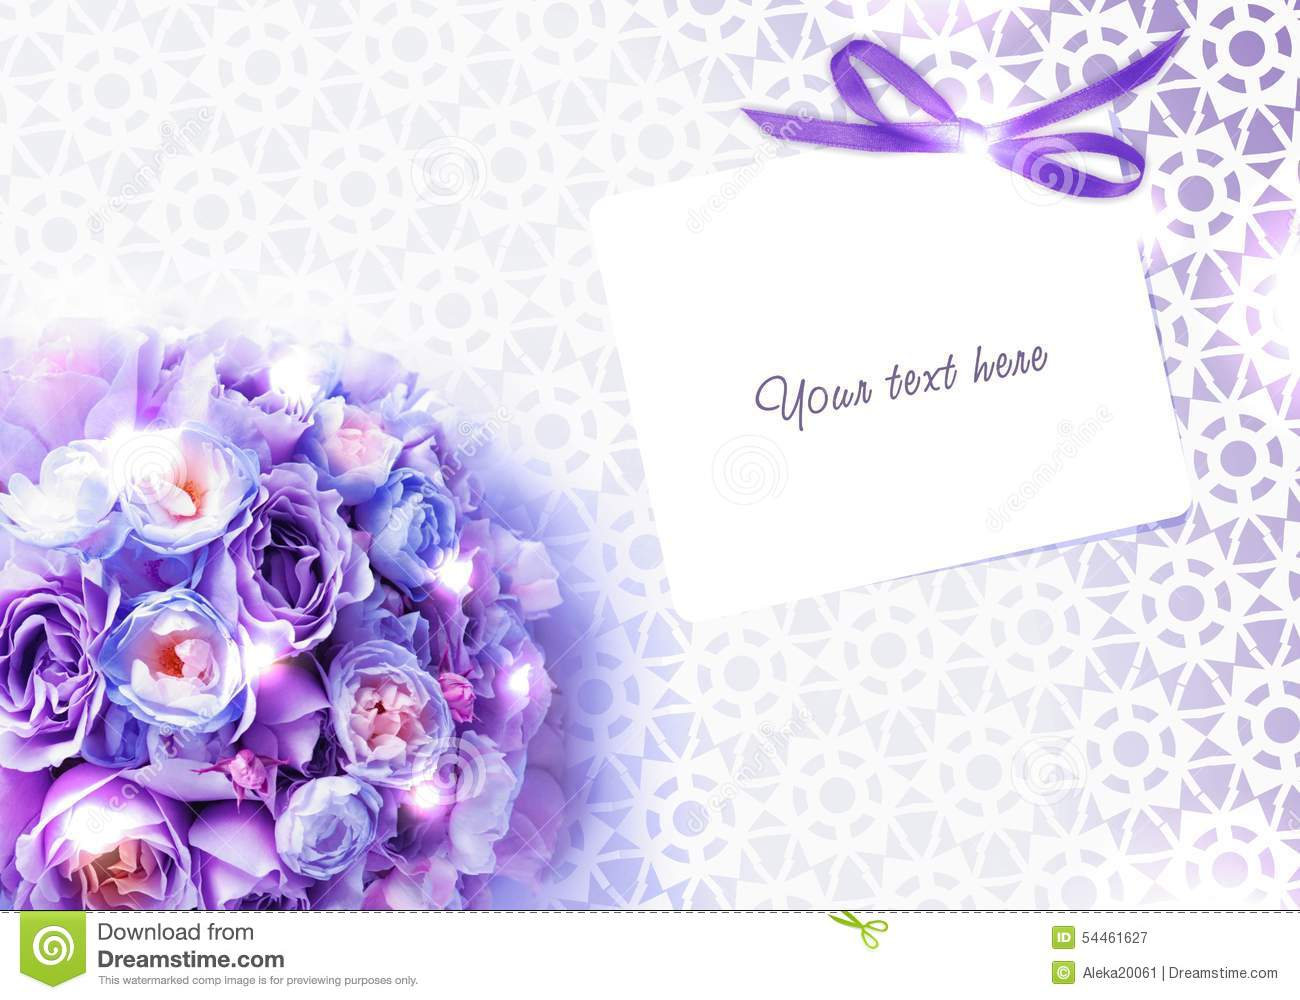 Wedding Bouquet Of Roses And An Invitation Card With Lace – An Invitation Card